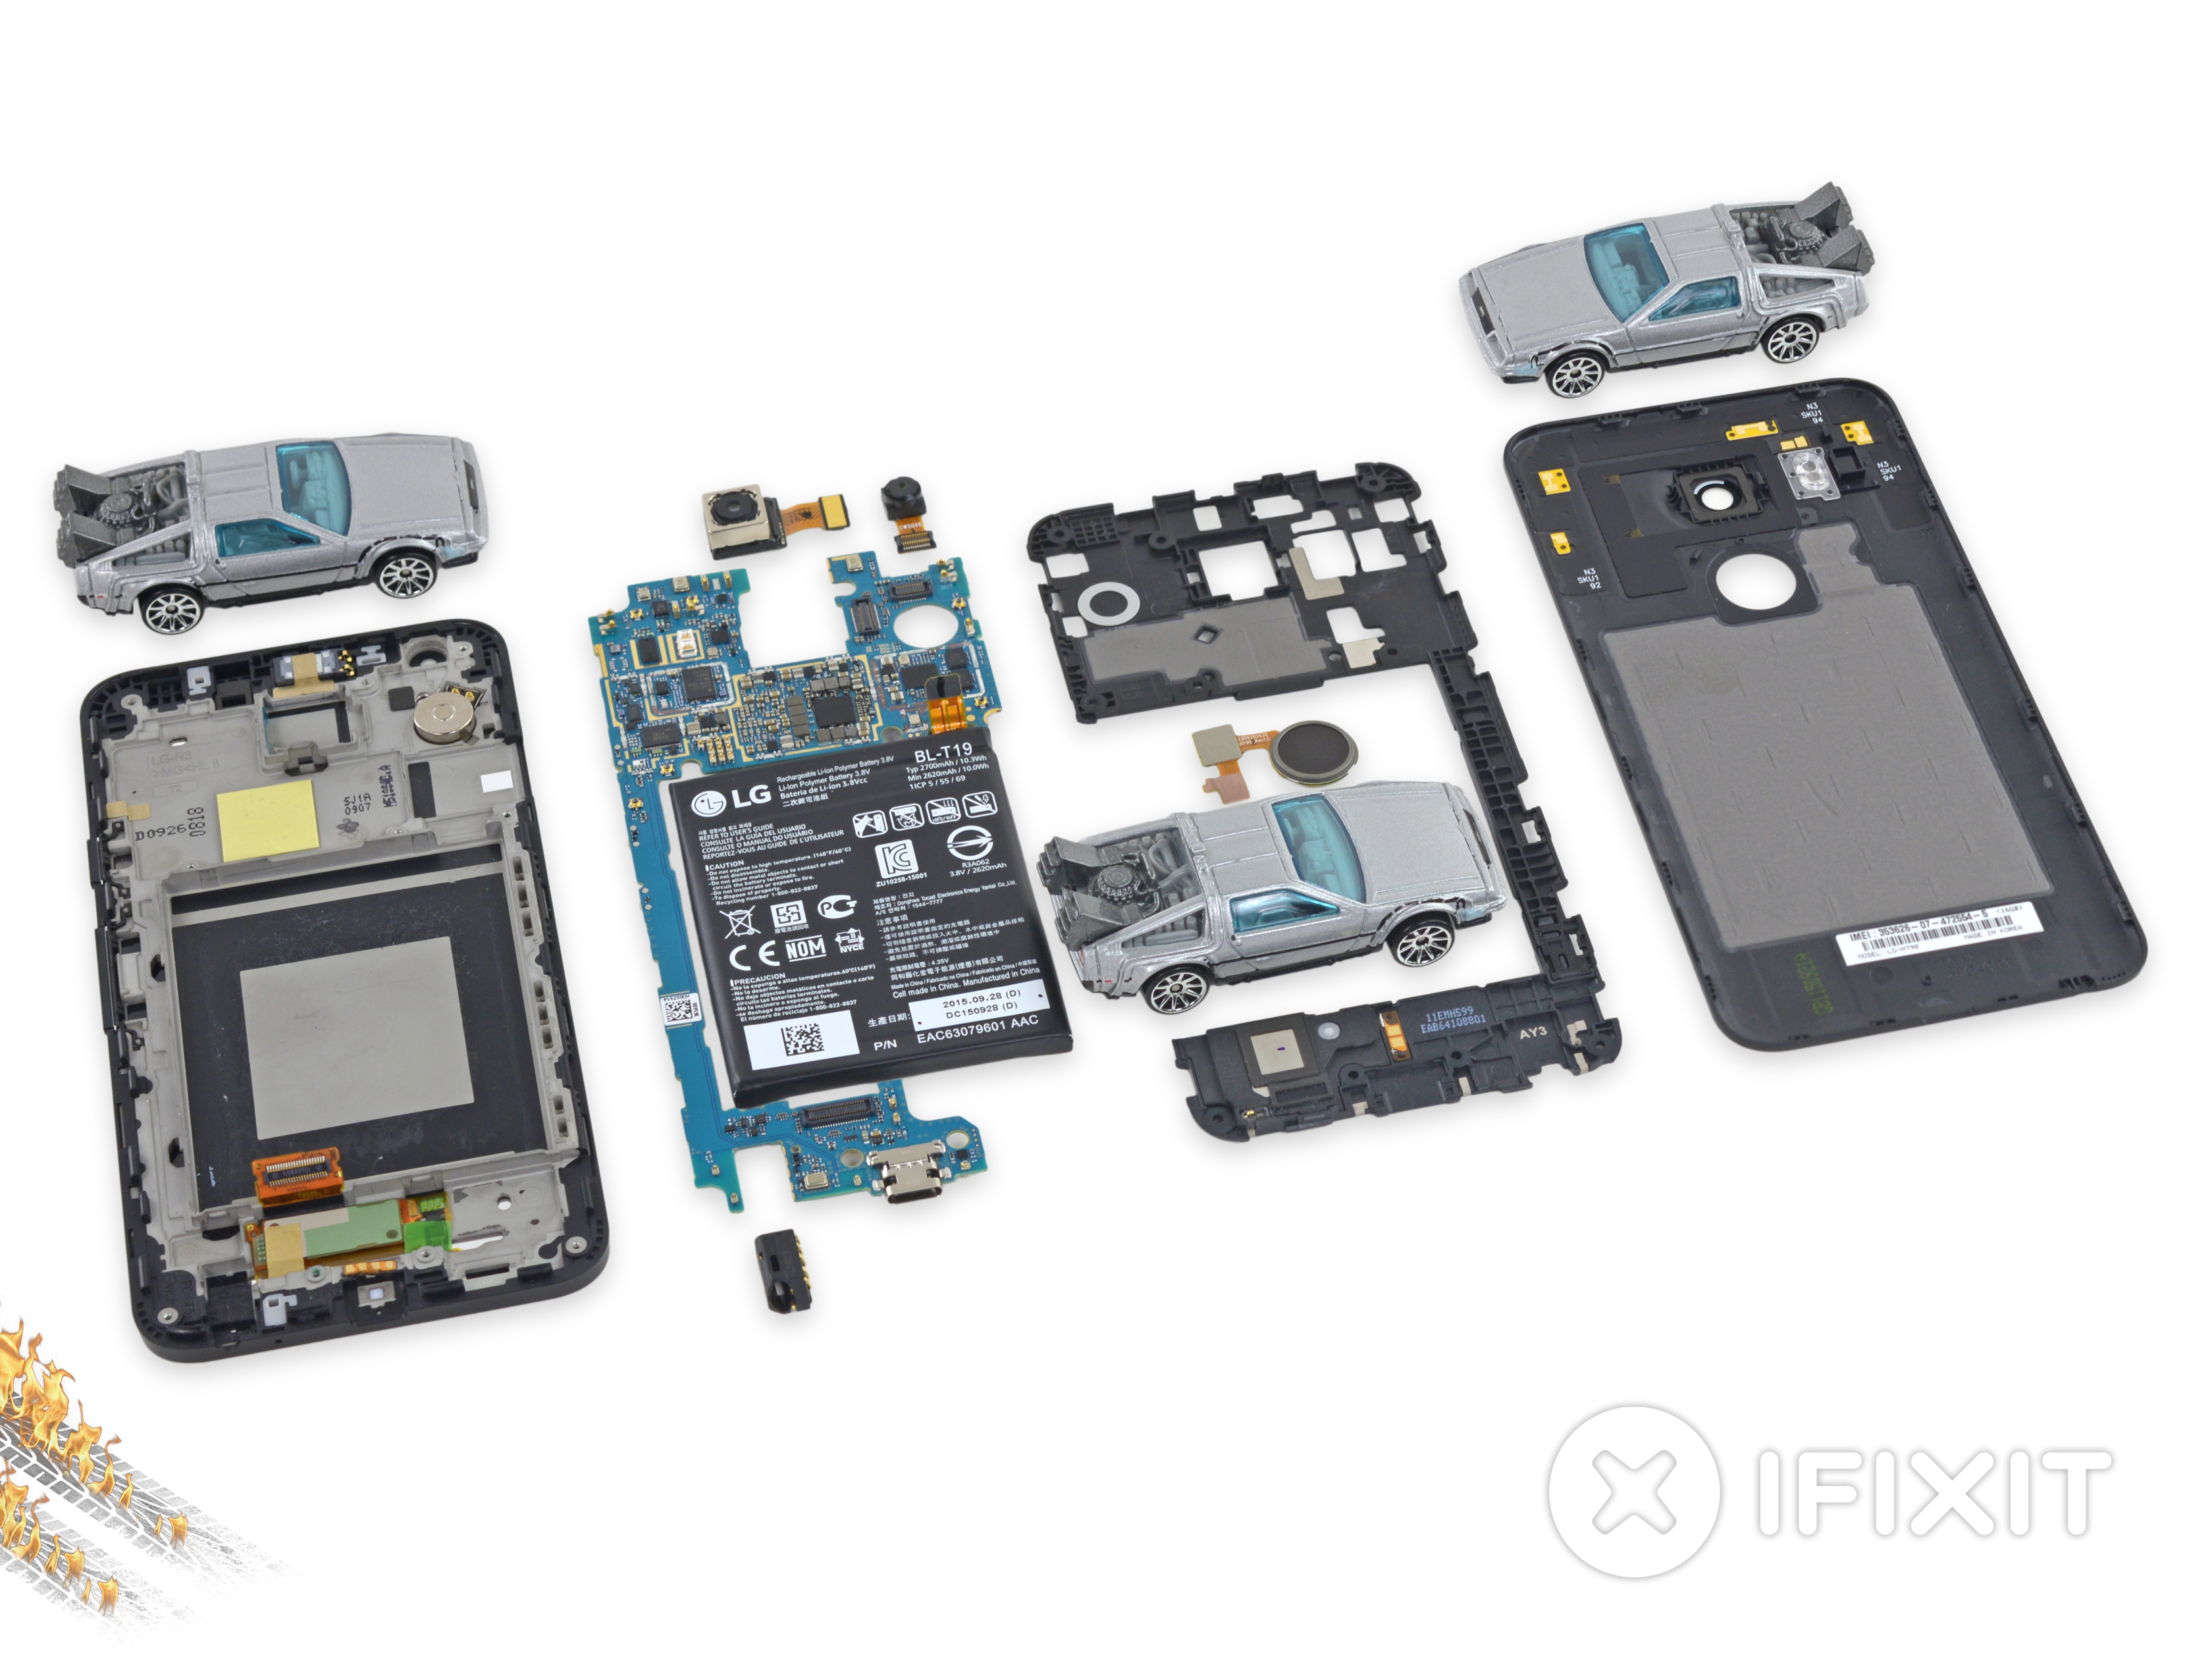 Samsung Galaxy S6 Cost Breakdown With Repair Cost further Iphone 6 Plus 5 5 Black Lcd Lens Camera Screen Display Digitizer Assembly Replacement Grade R moreover Telephone Charge Plus Quelques Conseils Base Suivre in addition Iphone Proximity Sensor Location further Black Iphone 6 Plus 5 5 Lcd Display Touch Screen Digitizer Front Camera Home Button Replacement Parts Assembly. on samsung galaxy s6 battery replacement